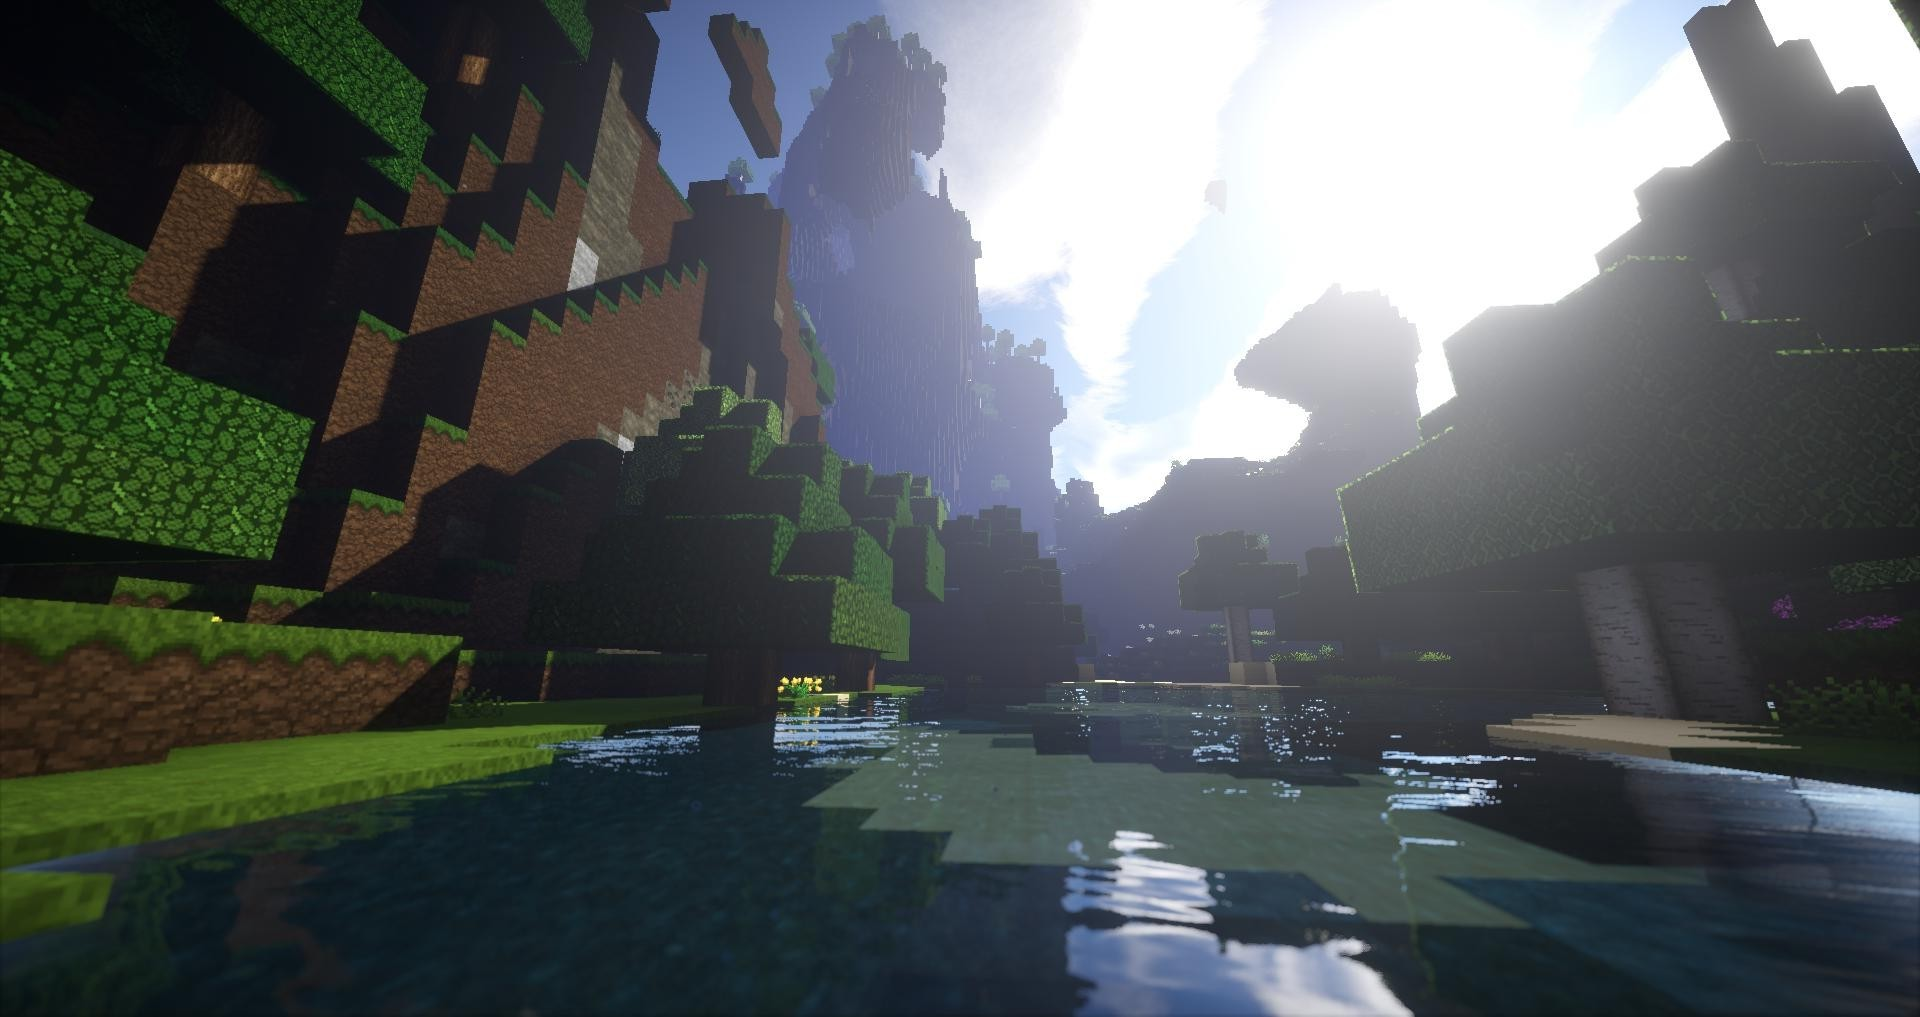 Minecraft Wallpaper Hd 1366x768 Minecraft Render Screenshots Lake Wallpapers Hd